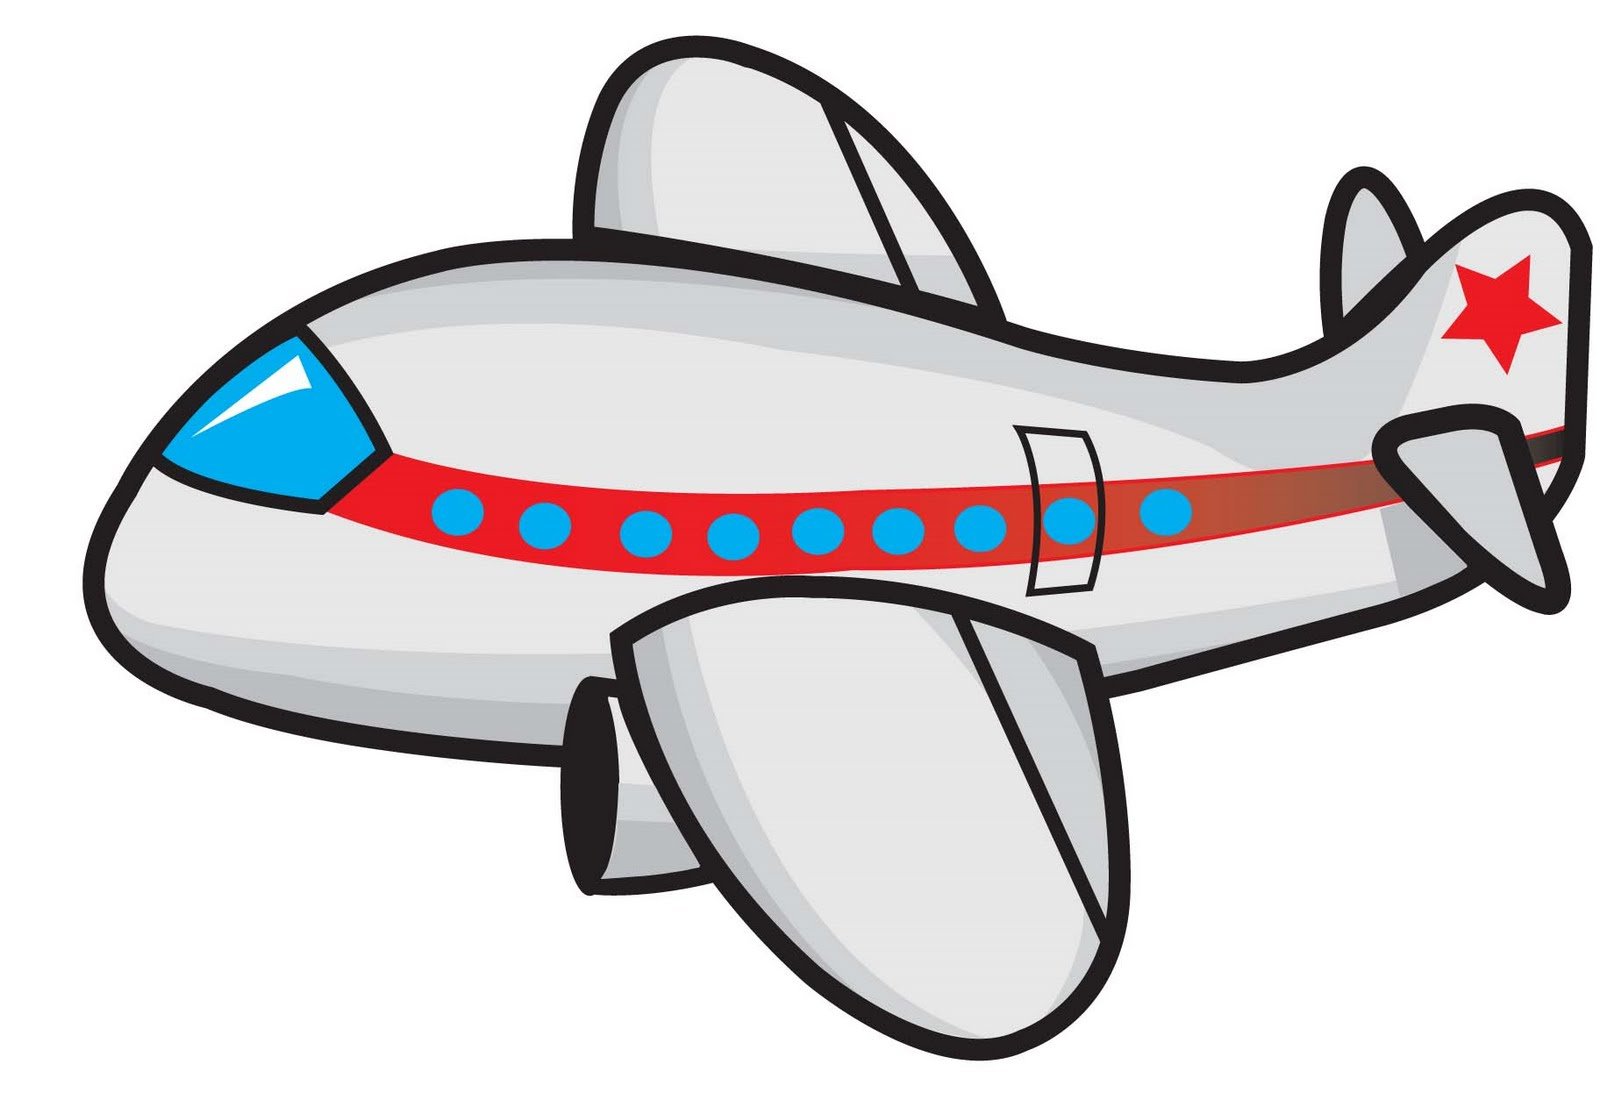 airplane clipart at getdrawings com free for personal use airplane rh getdrawings com airplane clip art cute airplane clipart no background